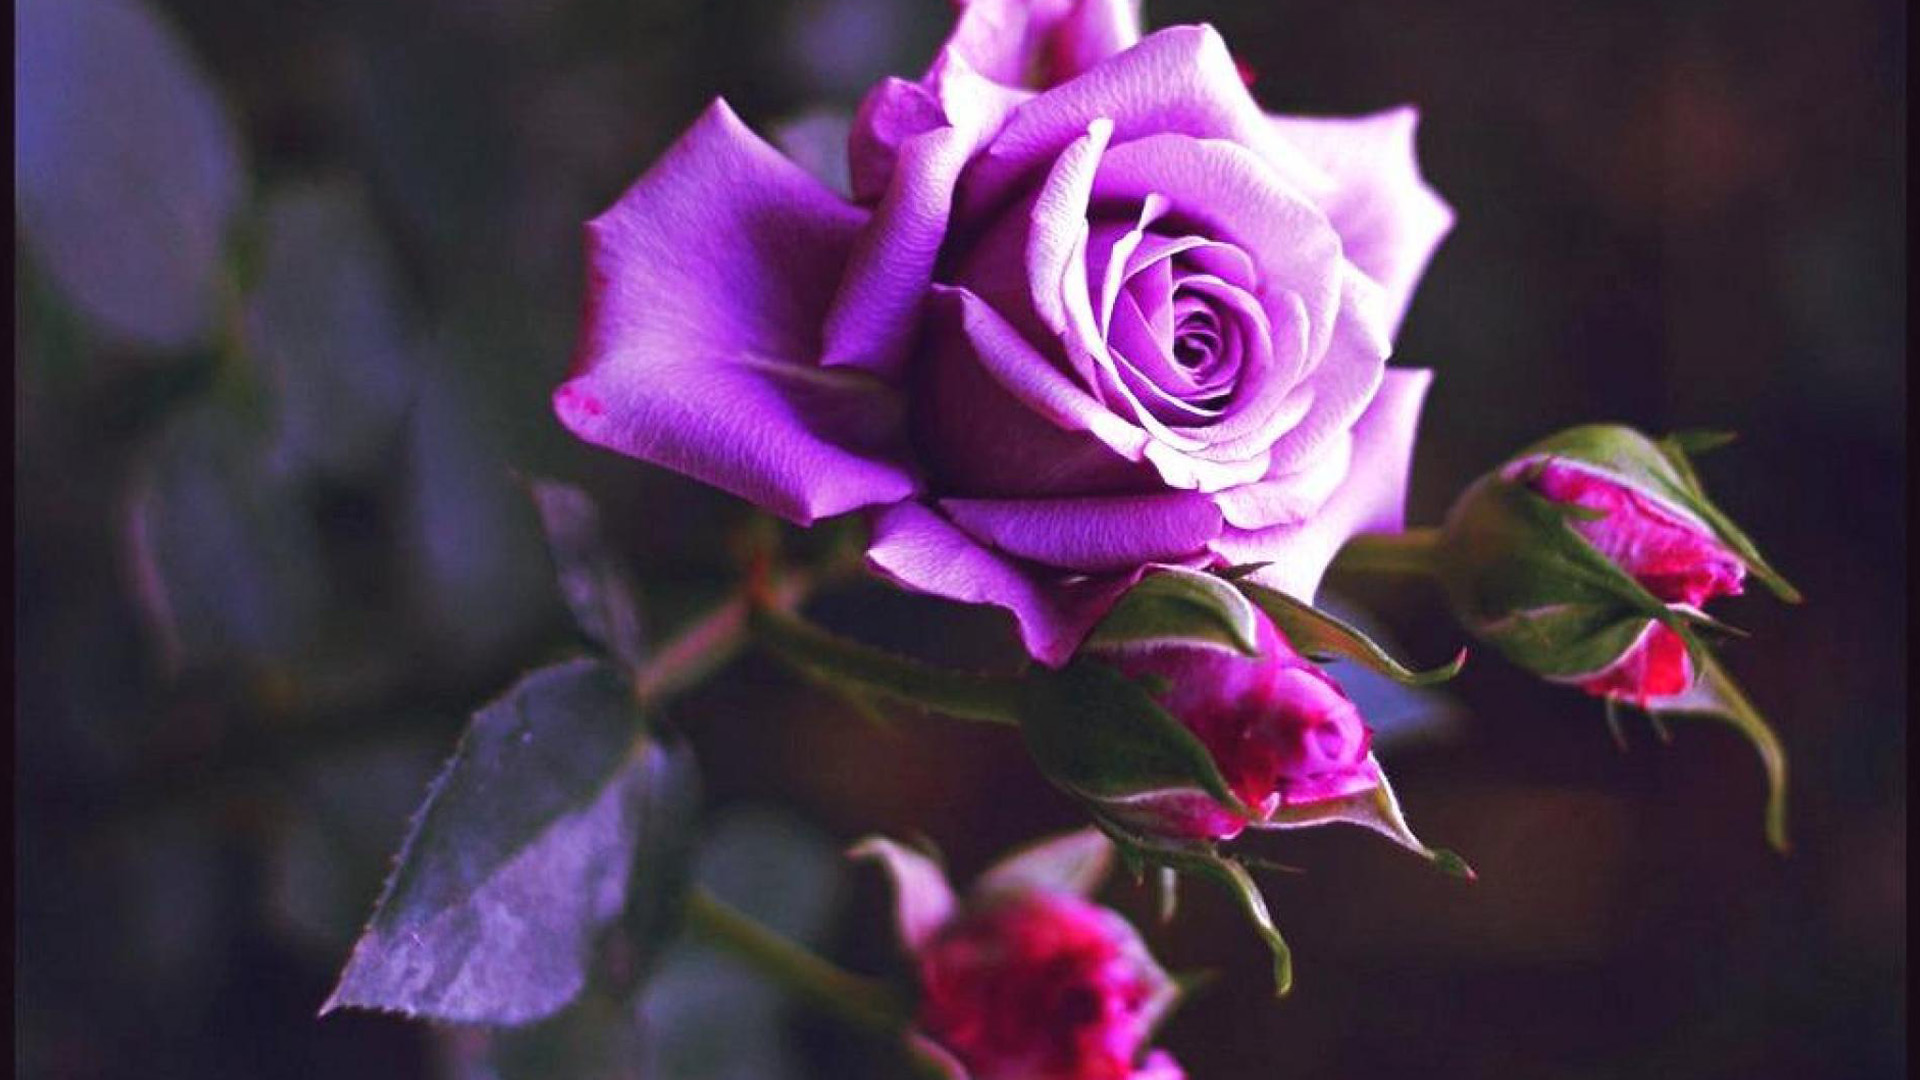 wallpapers of purple roses - photo #31